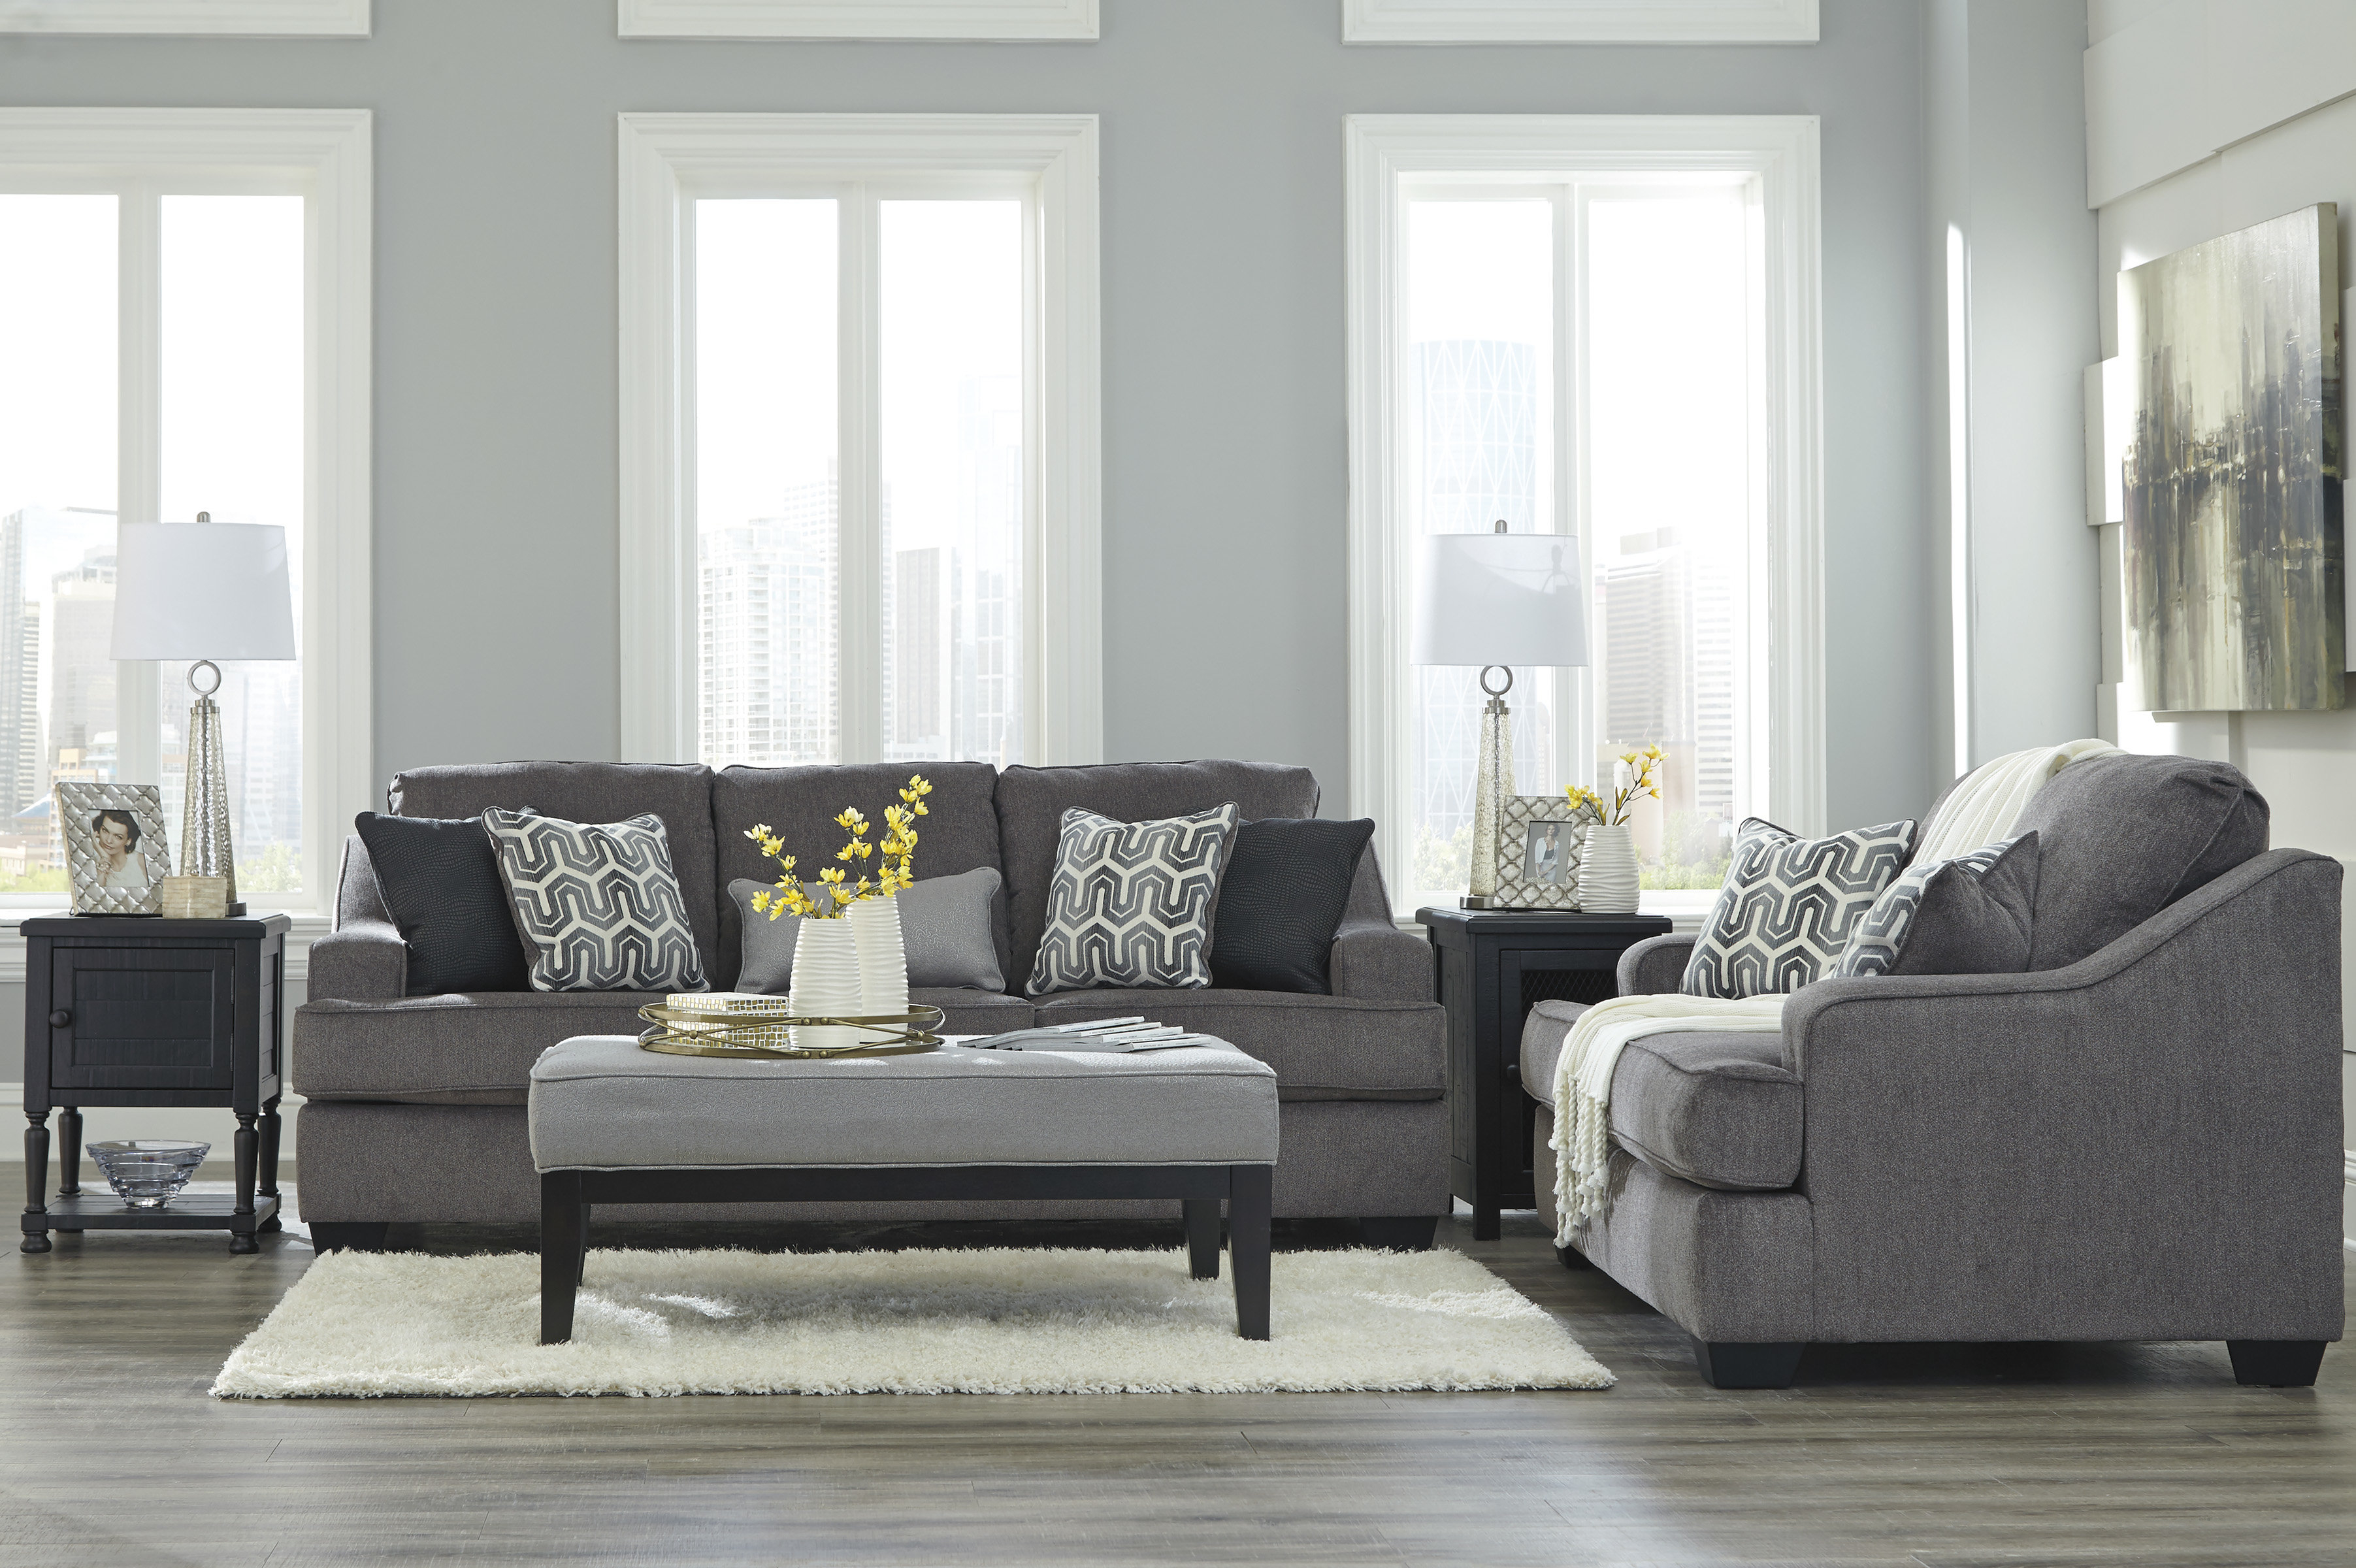 Nicholls Sleeper Living Room Set in 11 Awesome Designs of How to Make Living Room Sleeper Sets